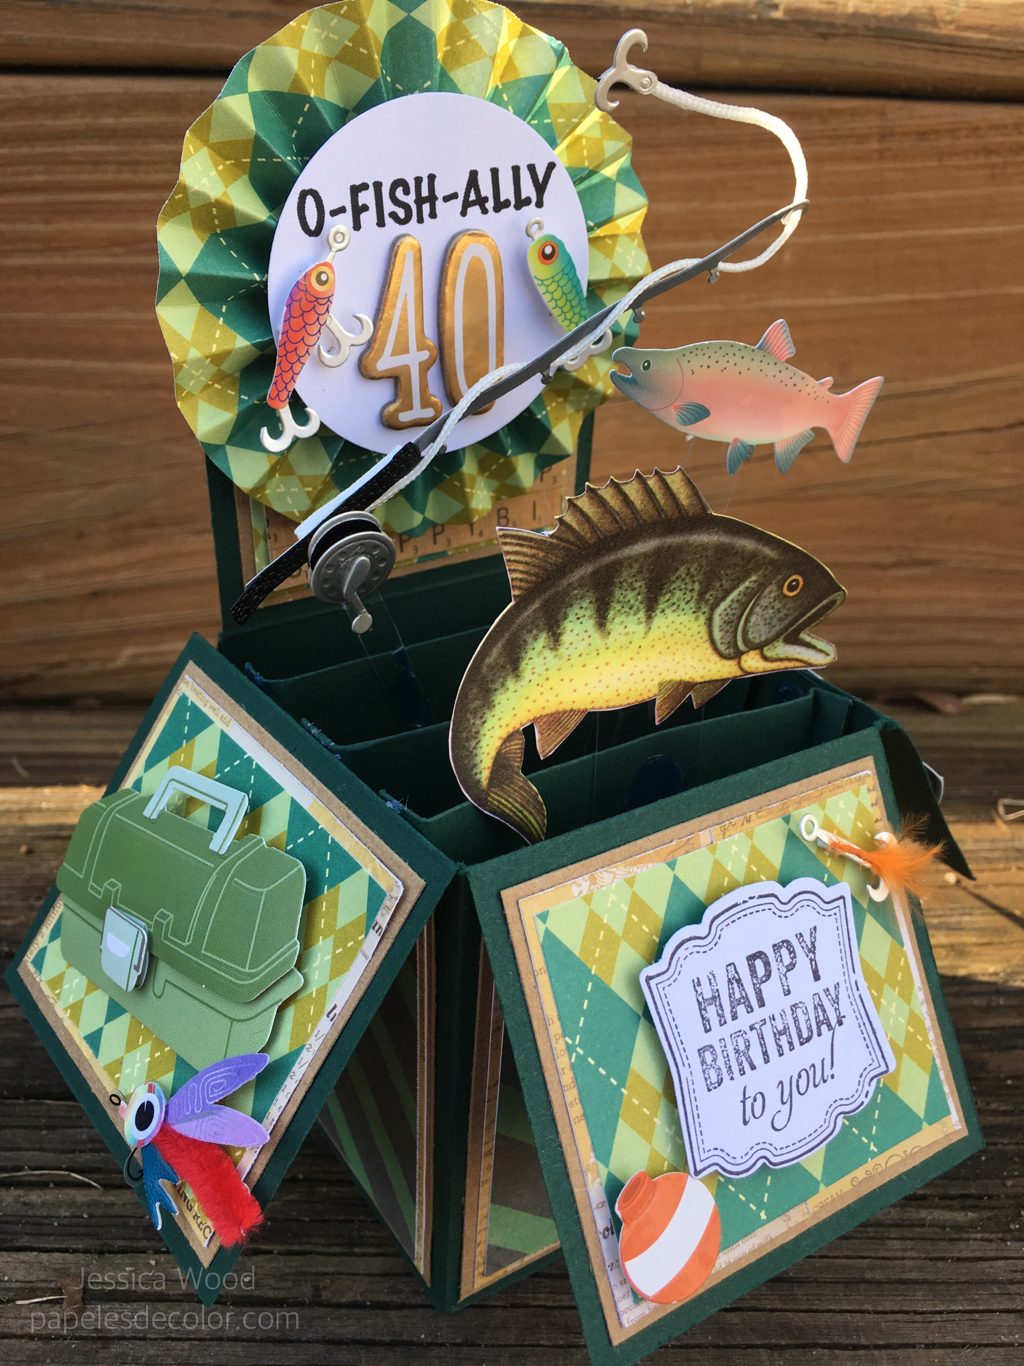 I Made This Fun Card For My Brother In Law Who Is Turning 40 And Loves Fishing